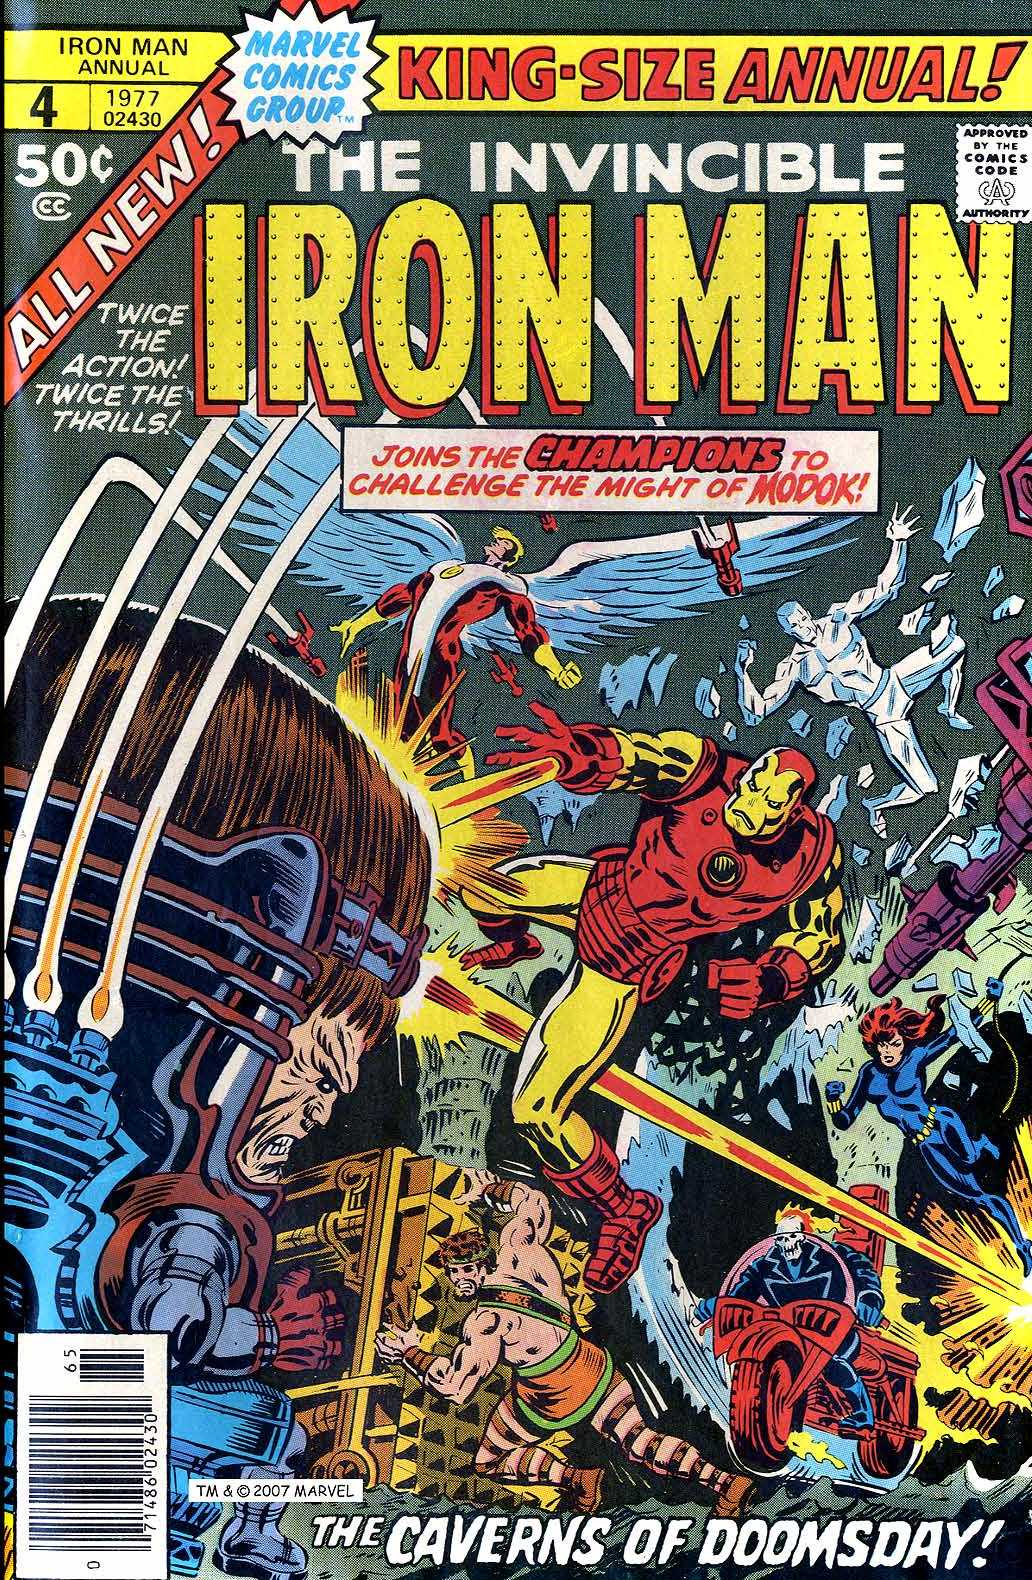 Iron Man Annual 4 Page 1